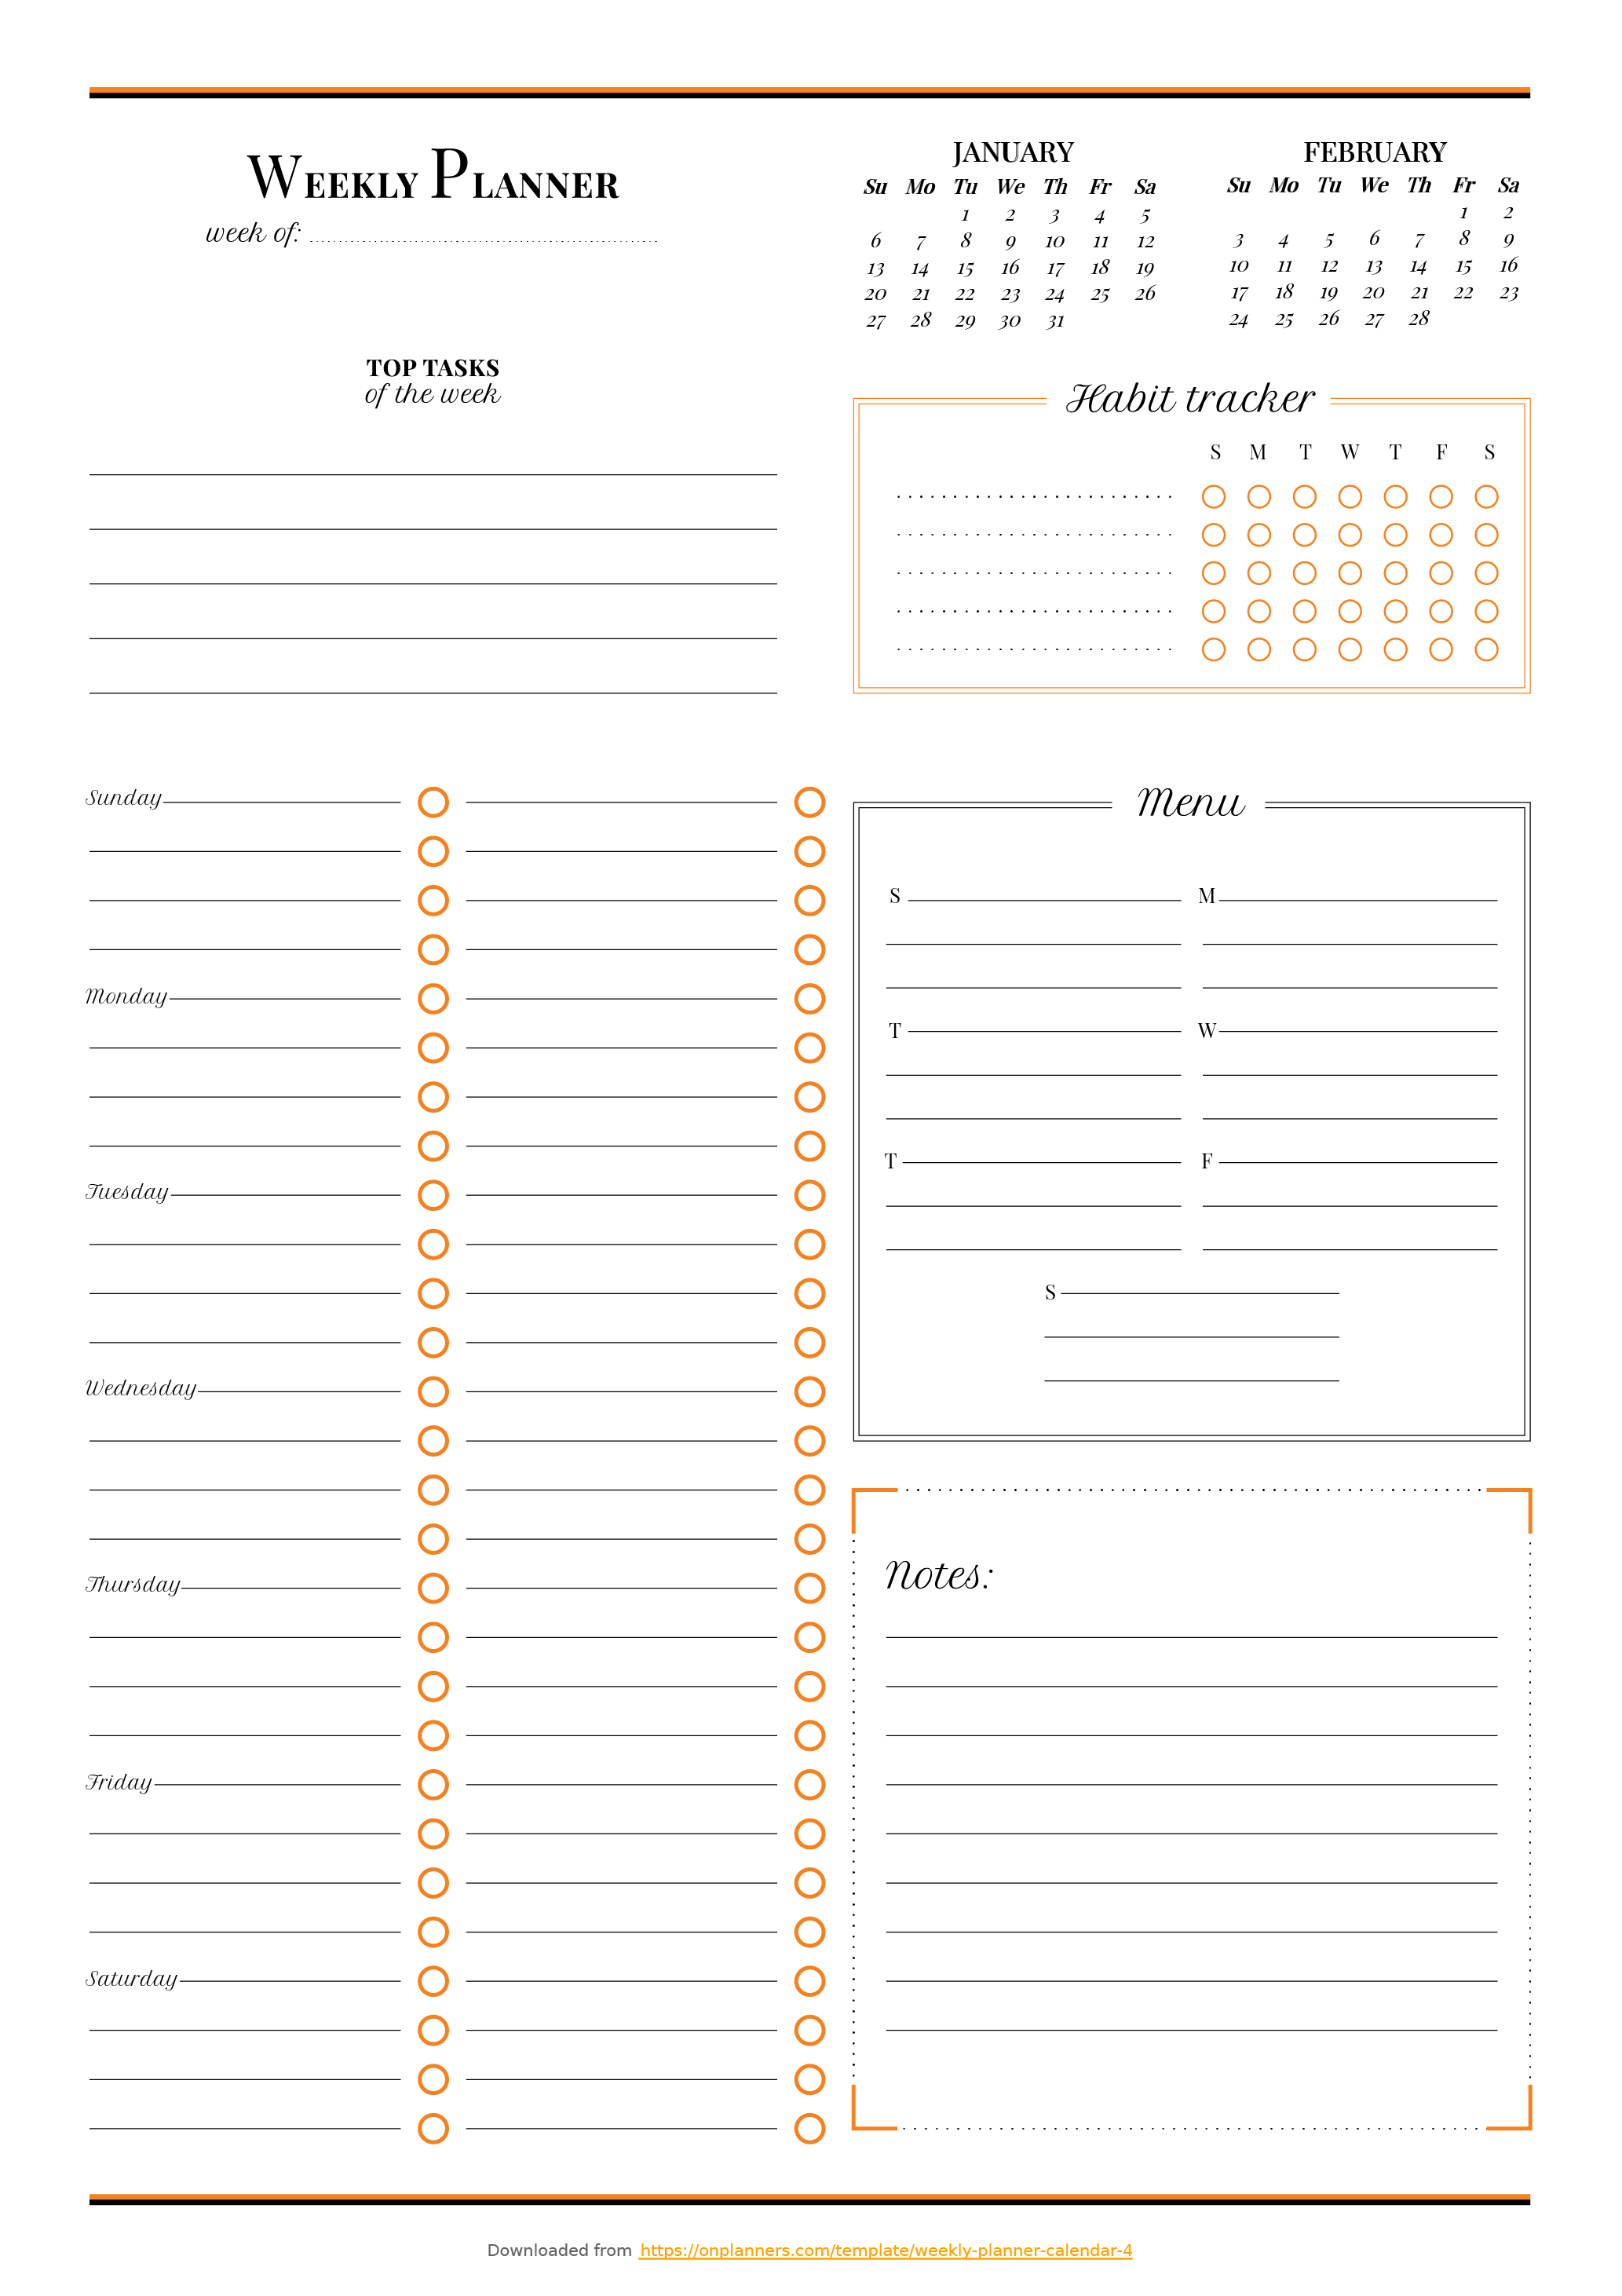 Printable Weekly planner with habit tracker PDF Download   Daily ...